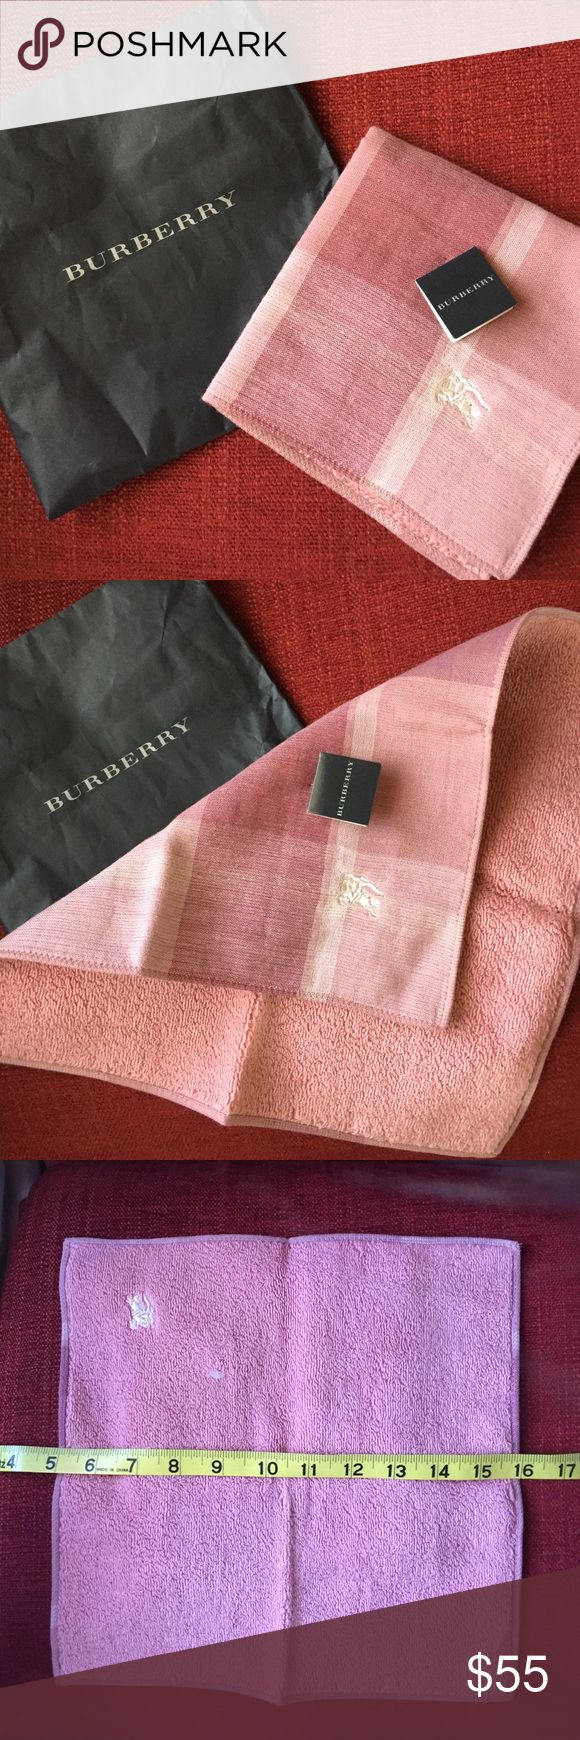 Burberry hand towel Authentic. Brand new. Come with the original paper bag.  Japan BURBERRY Logo Checker Plaid Handkerchief Hand Towel Pink Purple 100 Cotton. Will be a great gift for some one you love or pamper yourself. Burberry Other